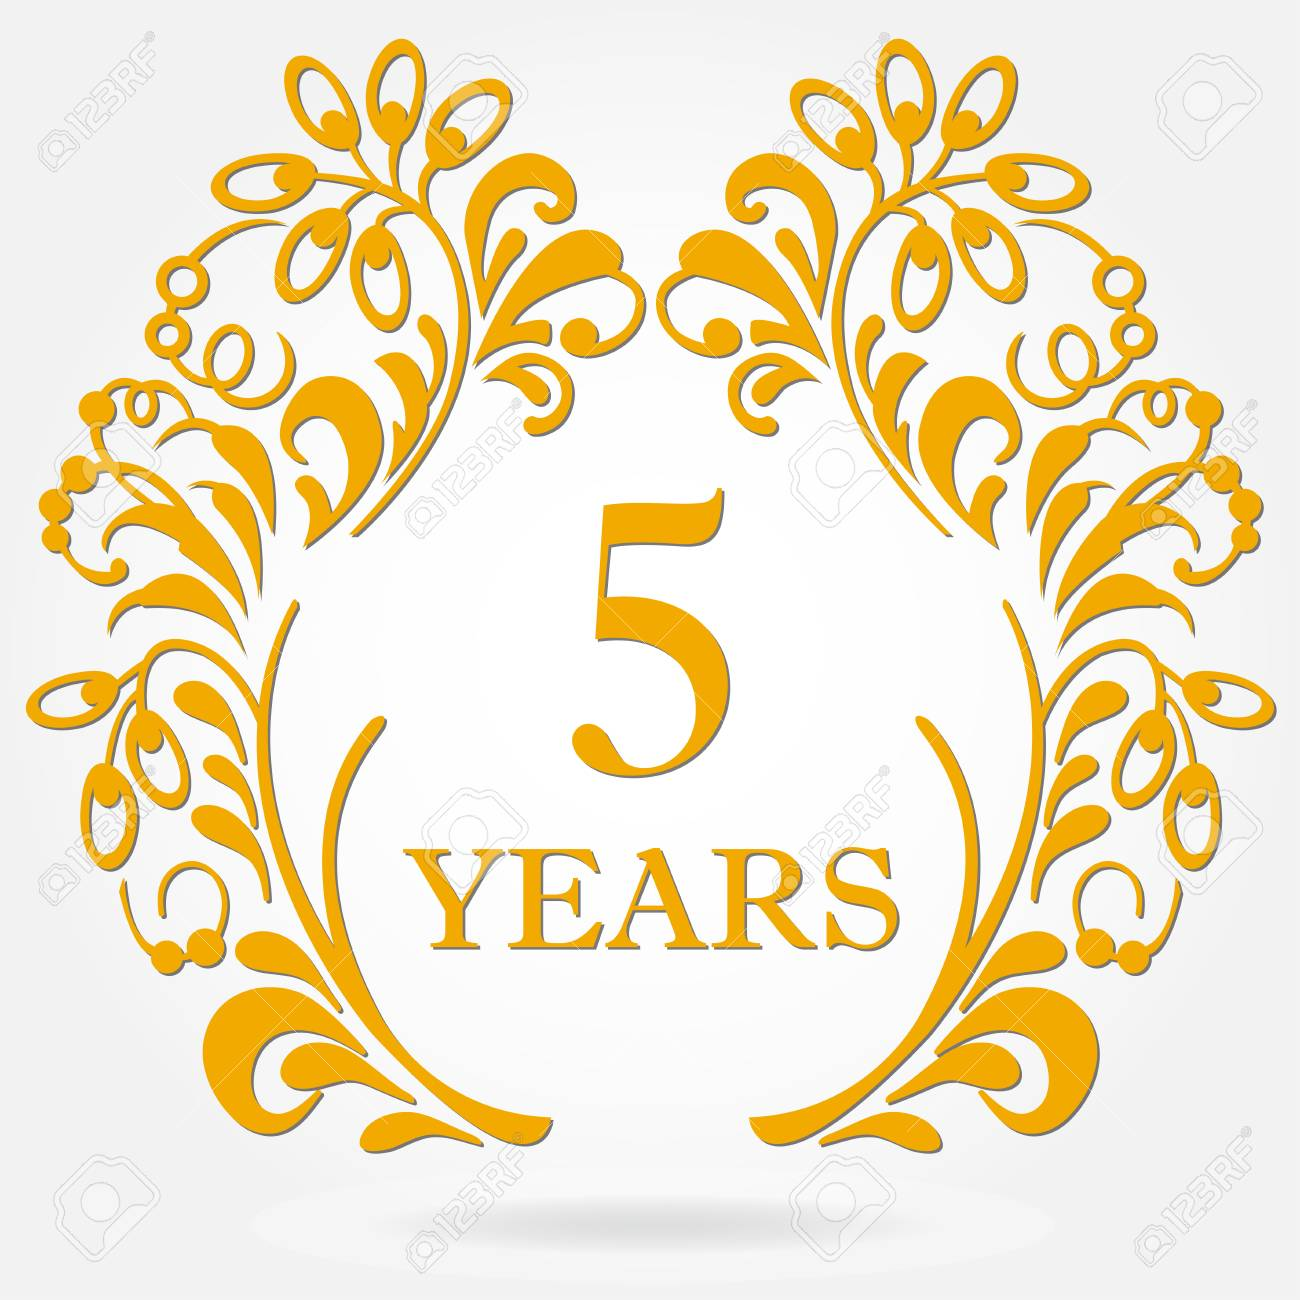 5 Years Anniversary Icon In Ornate Frame With Floral Elements... Royalty  Free Cliparts, Vectors, And Stock Illustration. Image 96758122.